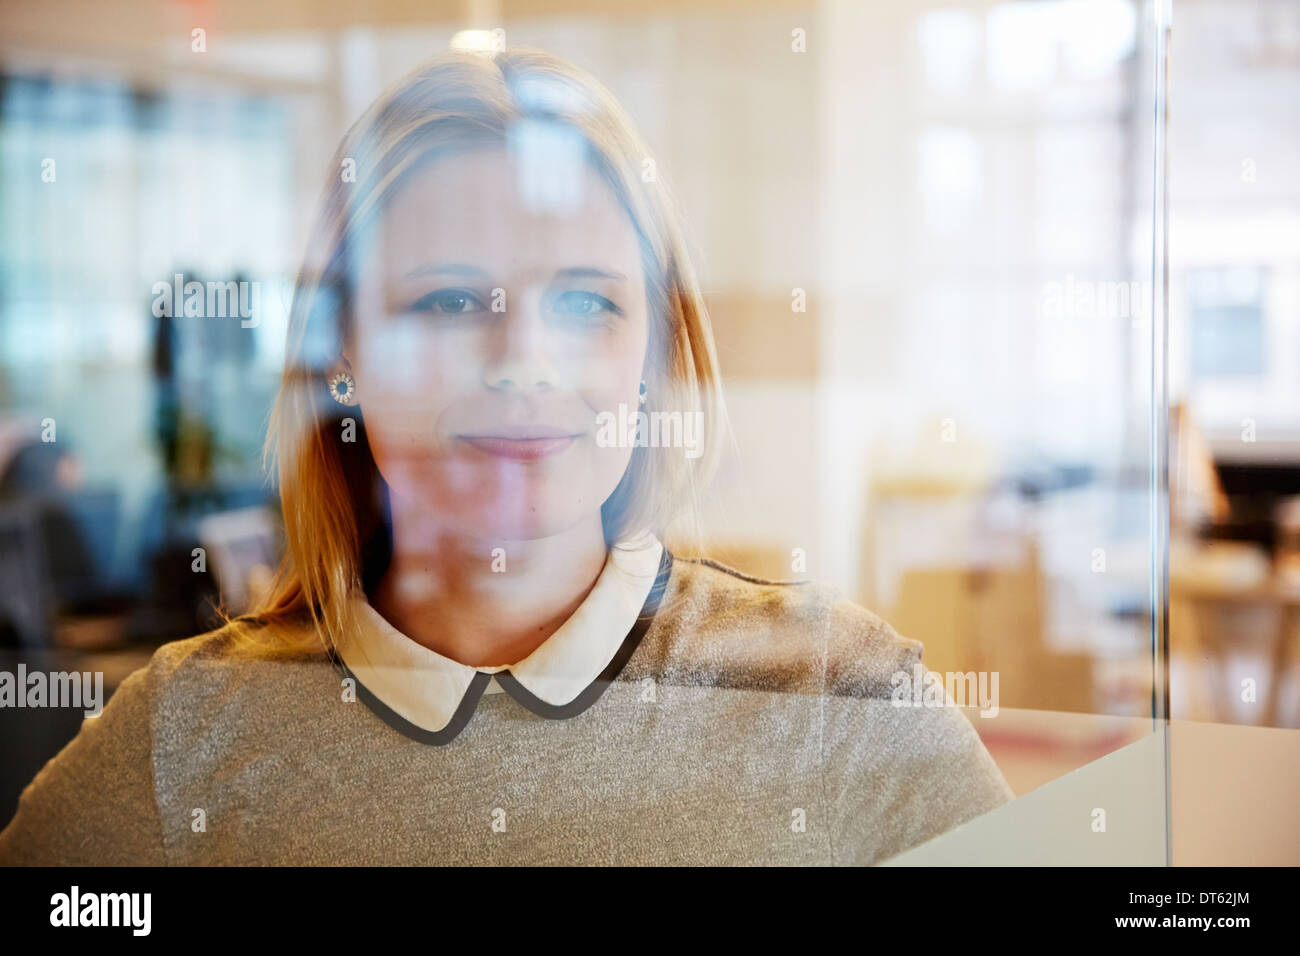 View through glass of female office worker Stock Photo